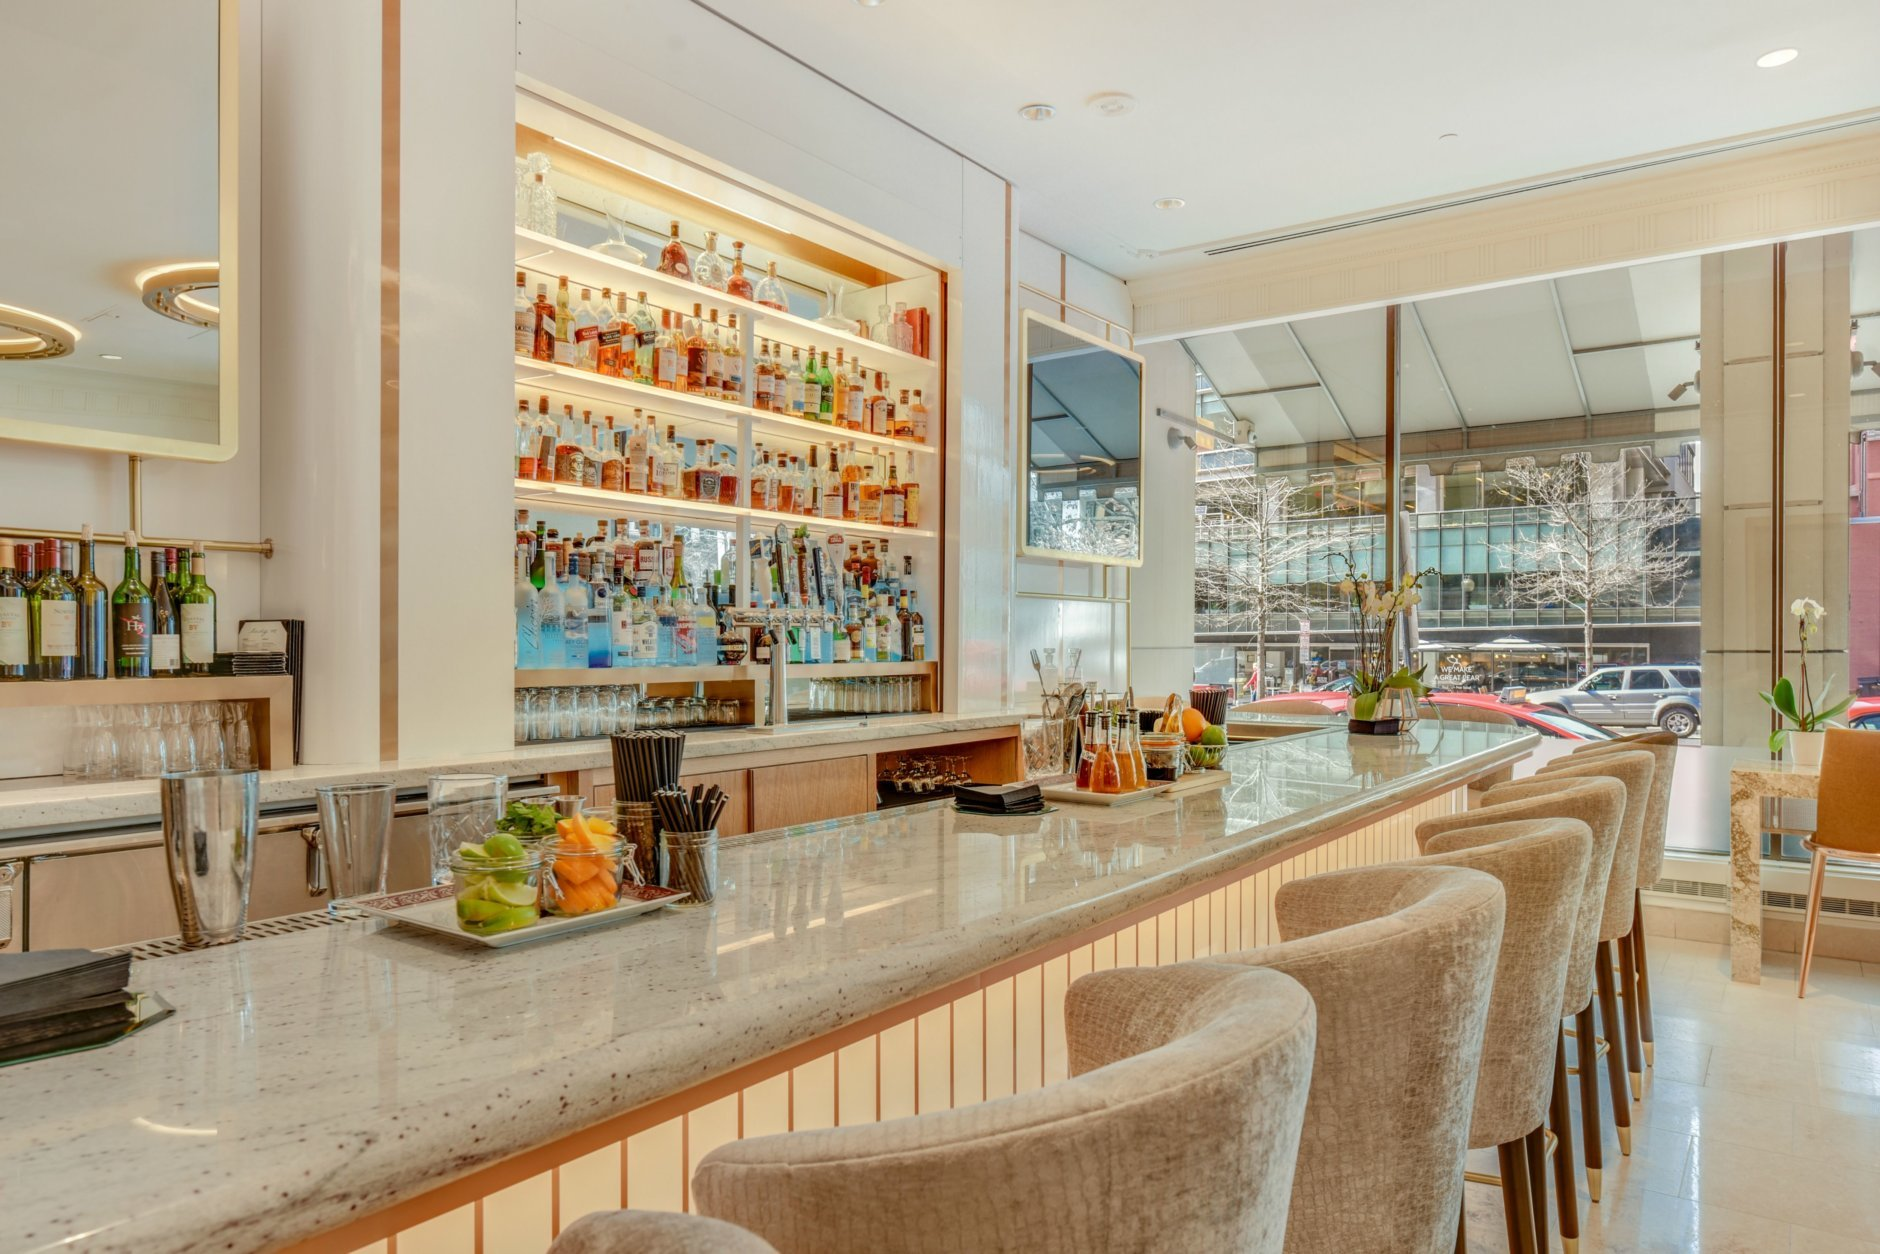 The Madison Washington DC hotel has completed a $4 million renovation of its lobby and other common areas, including a new Lady M cocktail lounge. (Courtesy Hilton Hotels)